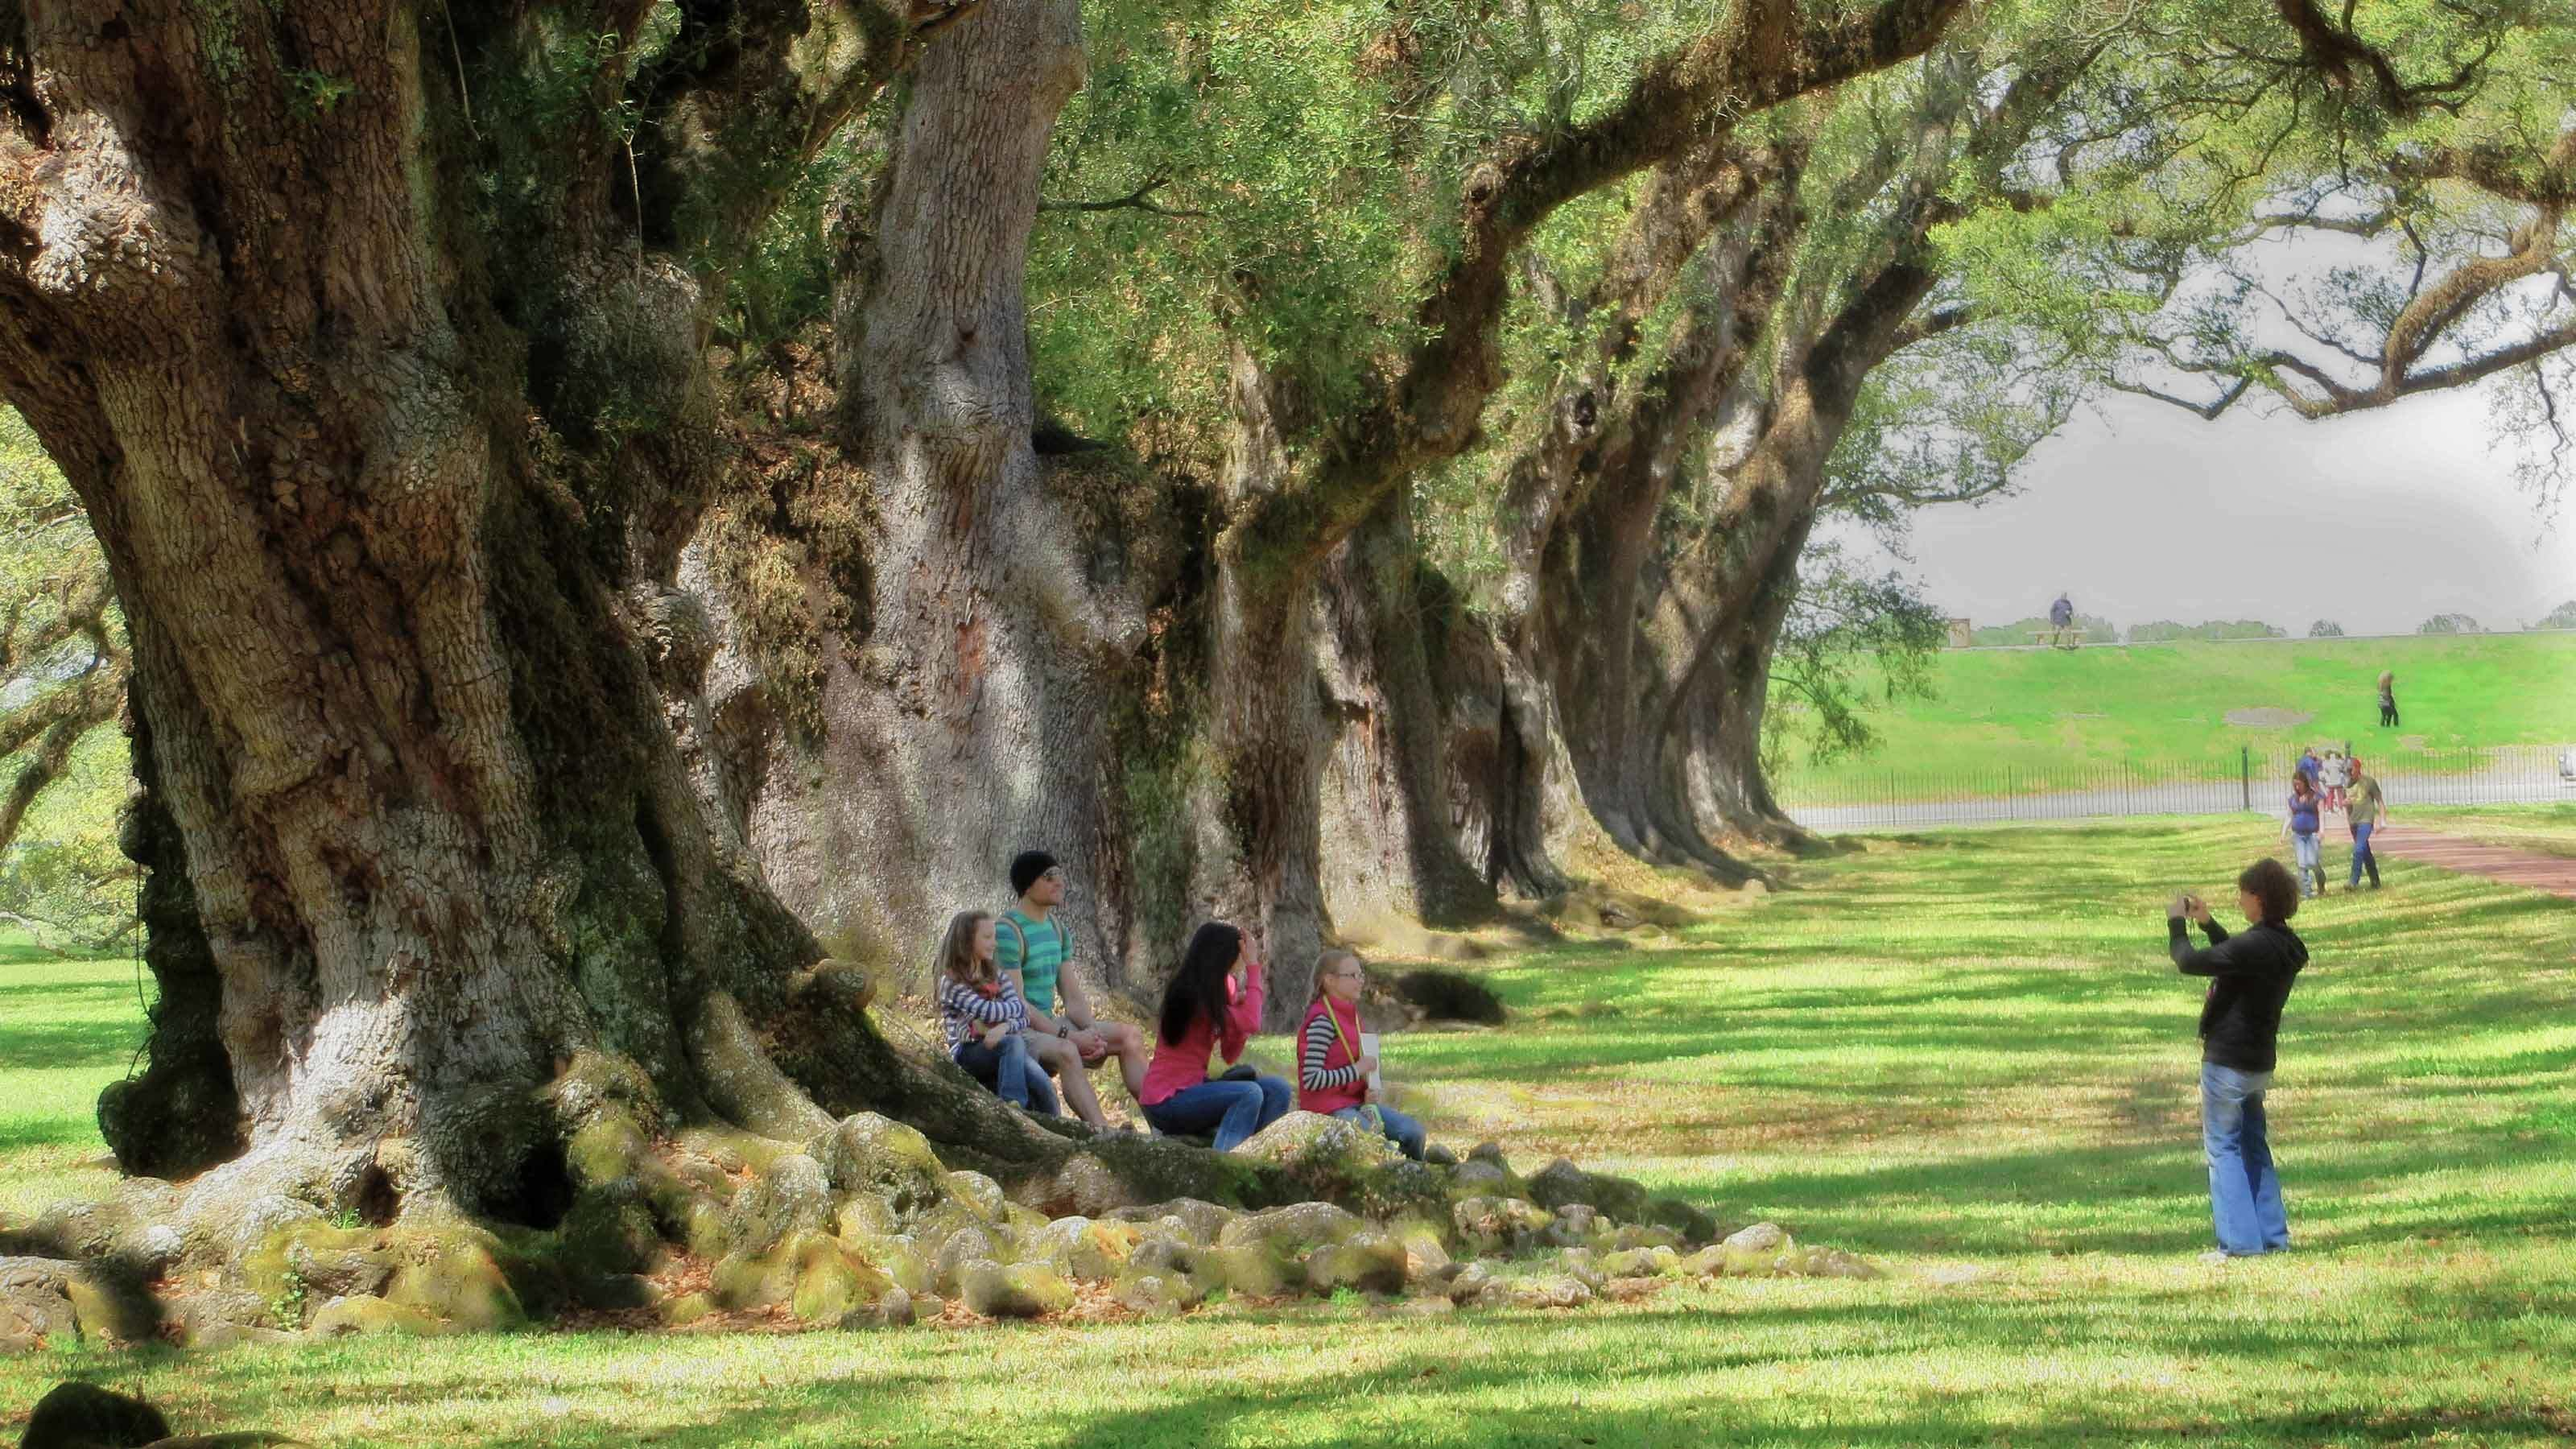 Row of old growth trees and people sitting around them